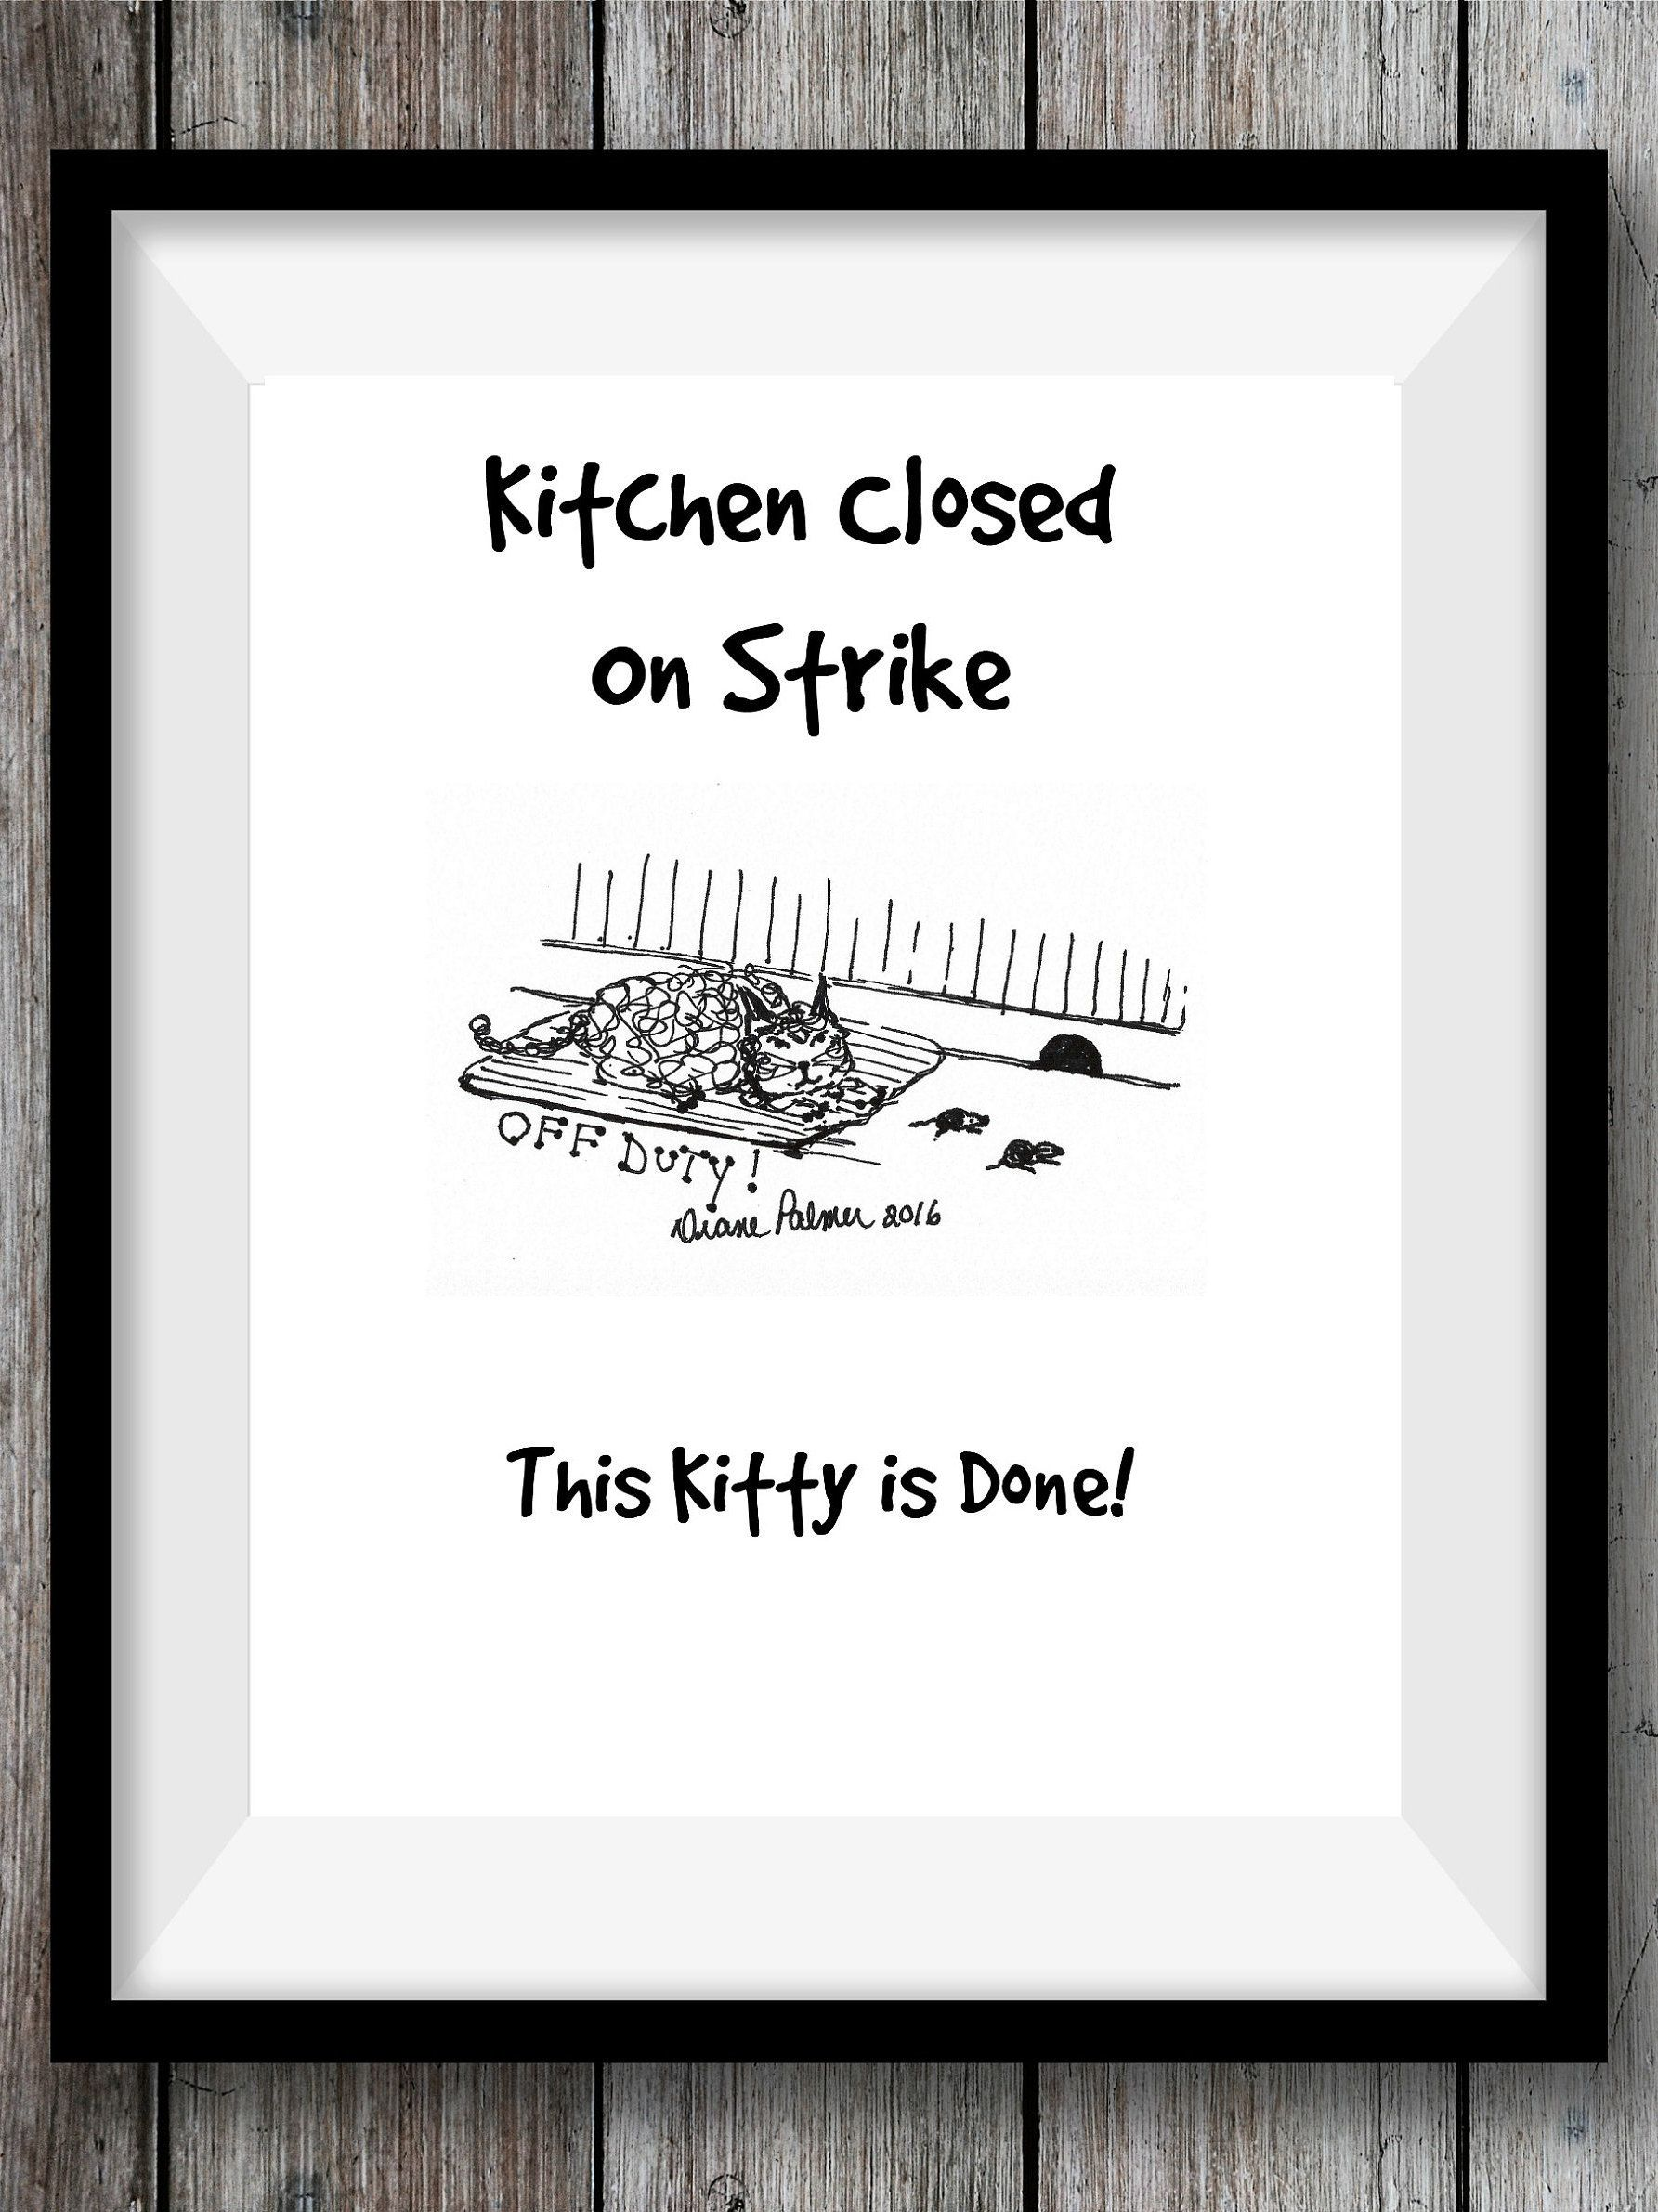 art for kitchen average cost of new cabinets cute cat drawing illustrated funny image signs closed off duty on strike wall printable downloadable by